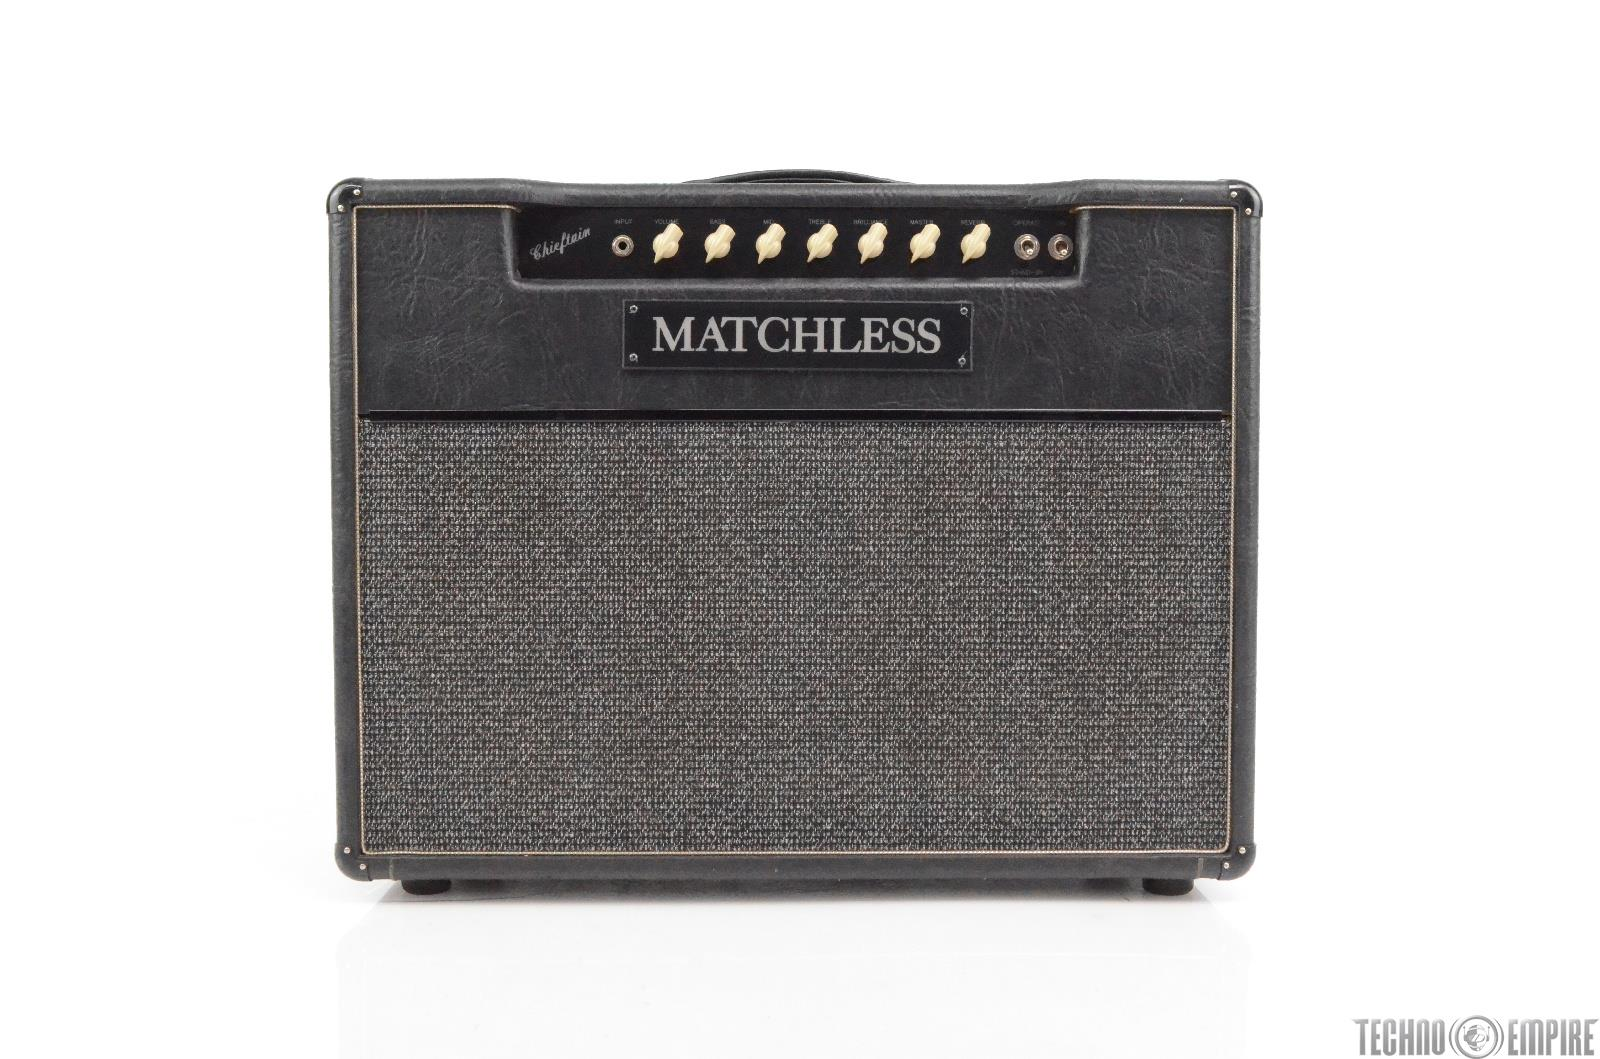 1995 Matchless Chieftain 40 Watt 2x12 Guitar Amplifier Owned by Matt Hyde #30015